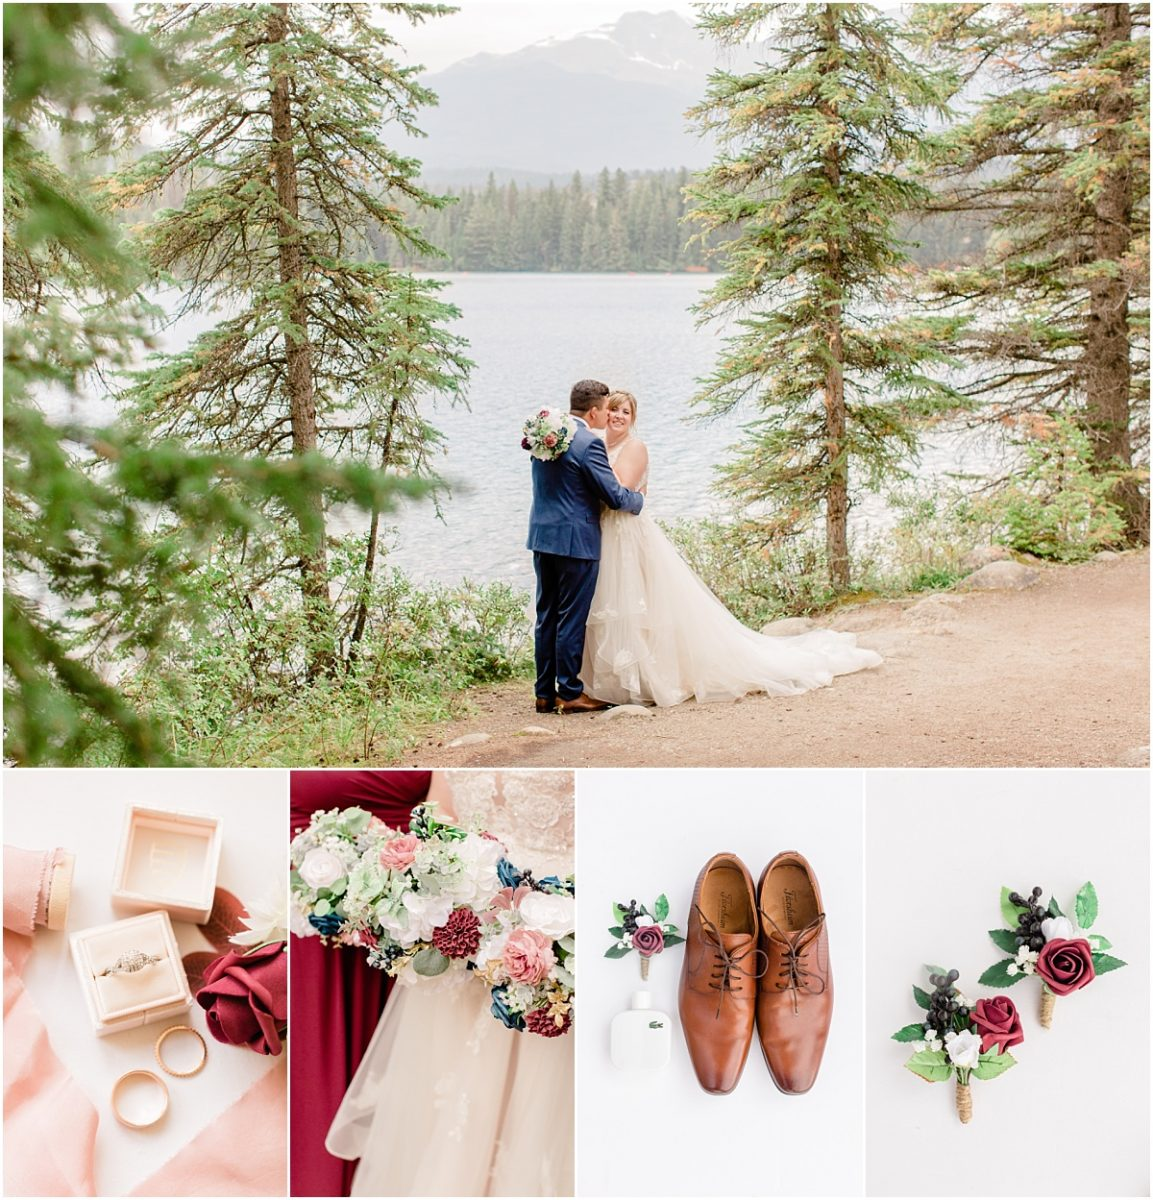 jasper park lodge fairmont jasper wedding venue beautiful special day with randy and ashton wedding colors navy and burgundy small mirco intimate wedding day with light and airy Alberta wedding photographer